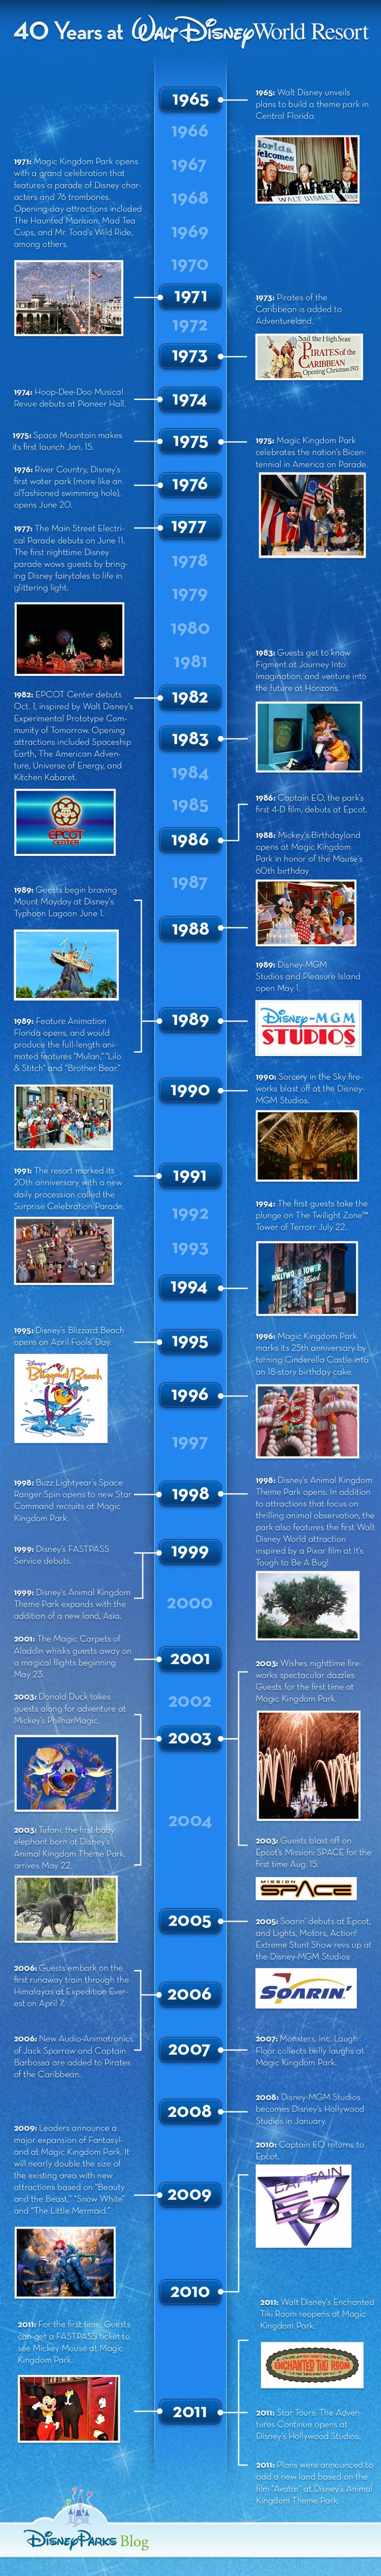 40 years of Walt Disney World Resort